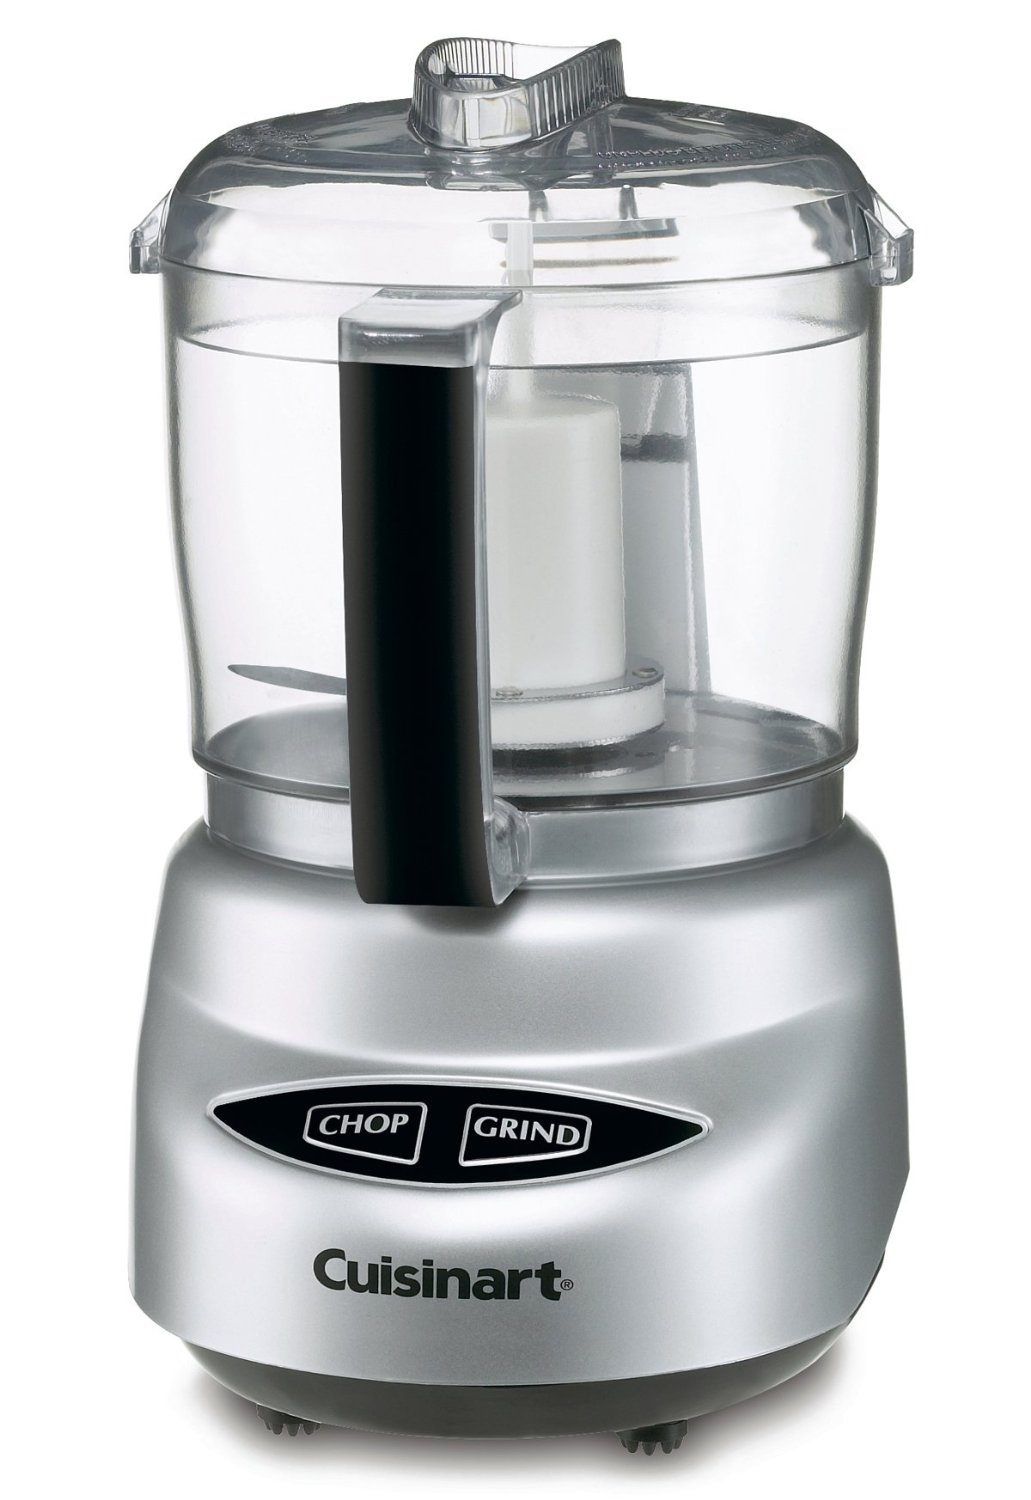 How To Make French Fries With Cuisinart Food Processor